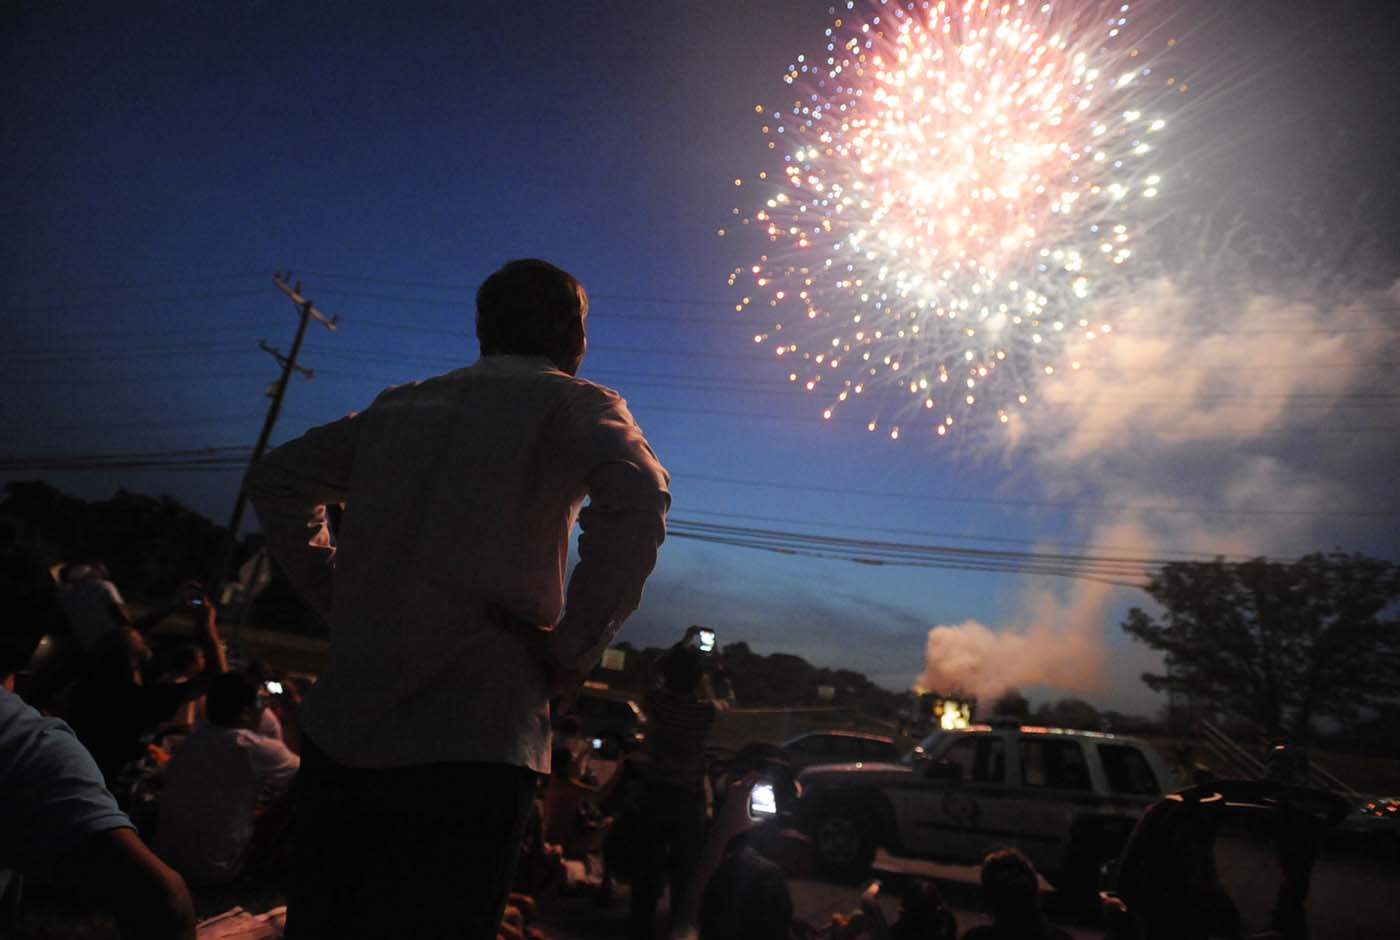 BALTIMORE, MD - JULY 04: A man stands among the crowd watching the annual fireworks show at Loch Raven Technical Academy on July 4th. (Noah Scialom for Patuxent Homestead)